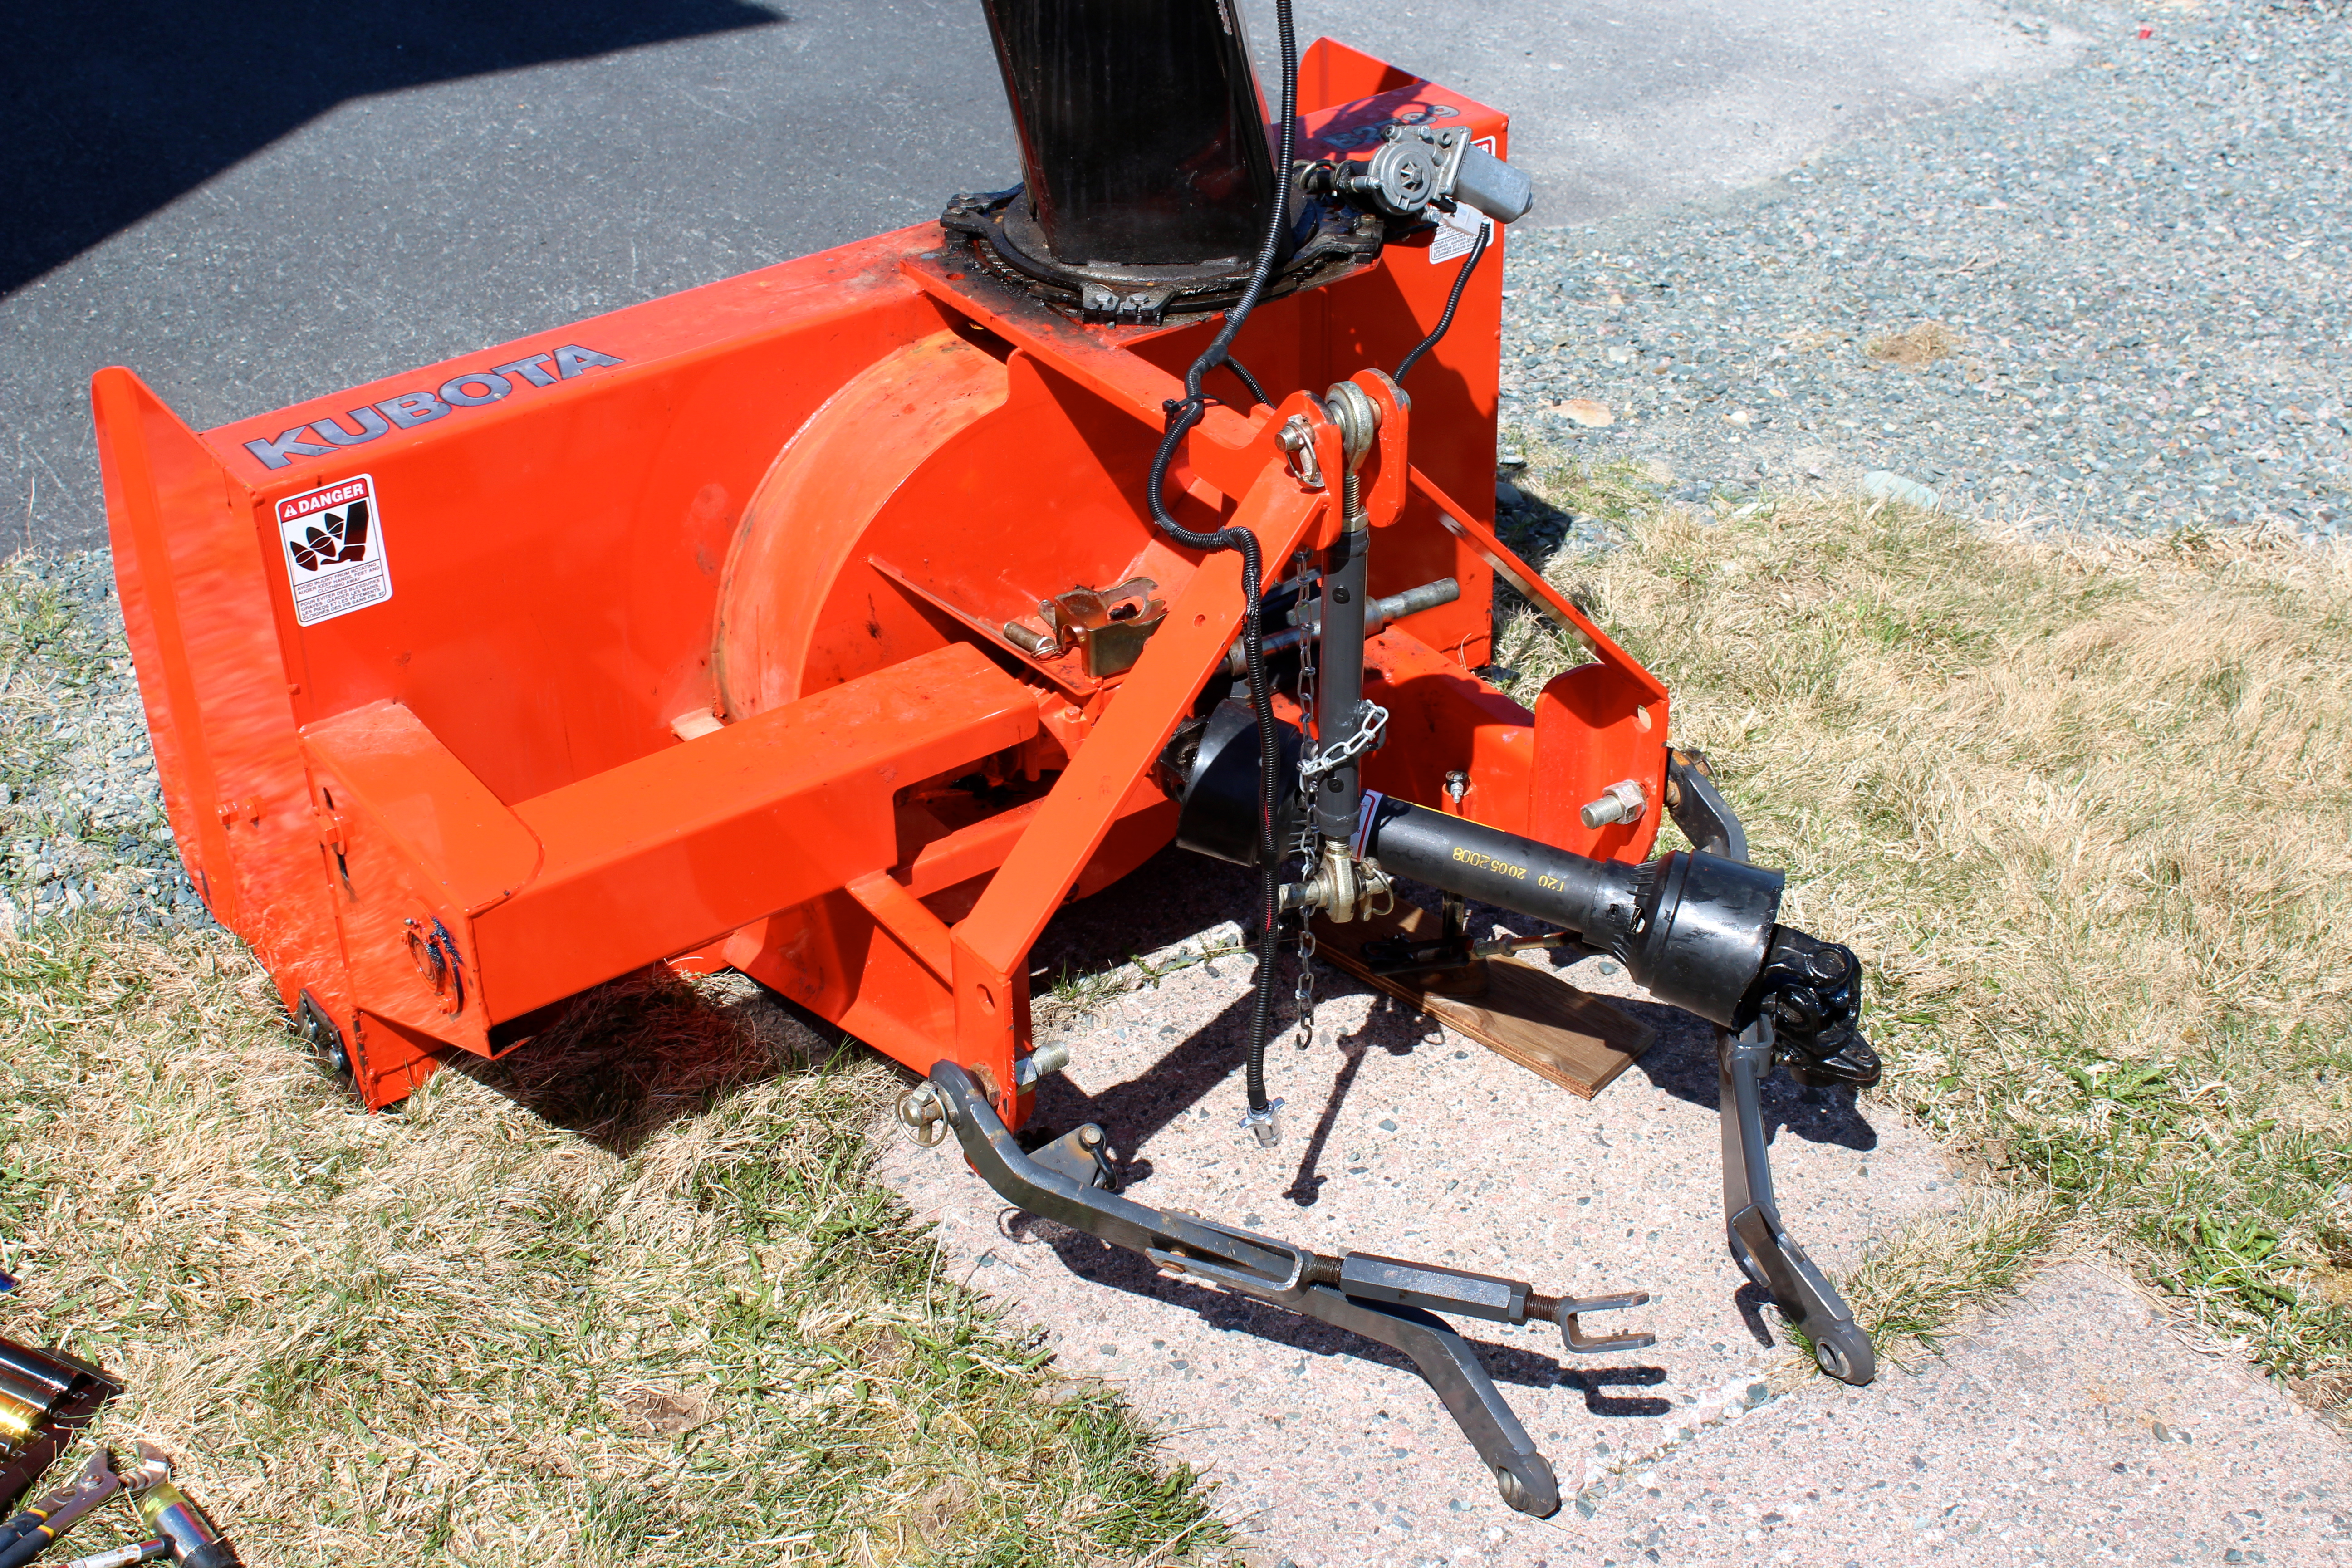 Picture of Snowblower Is Fully Removed From the Tractor